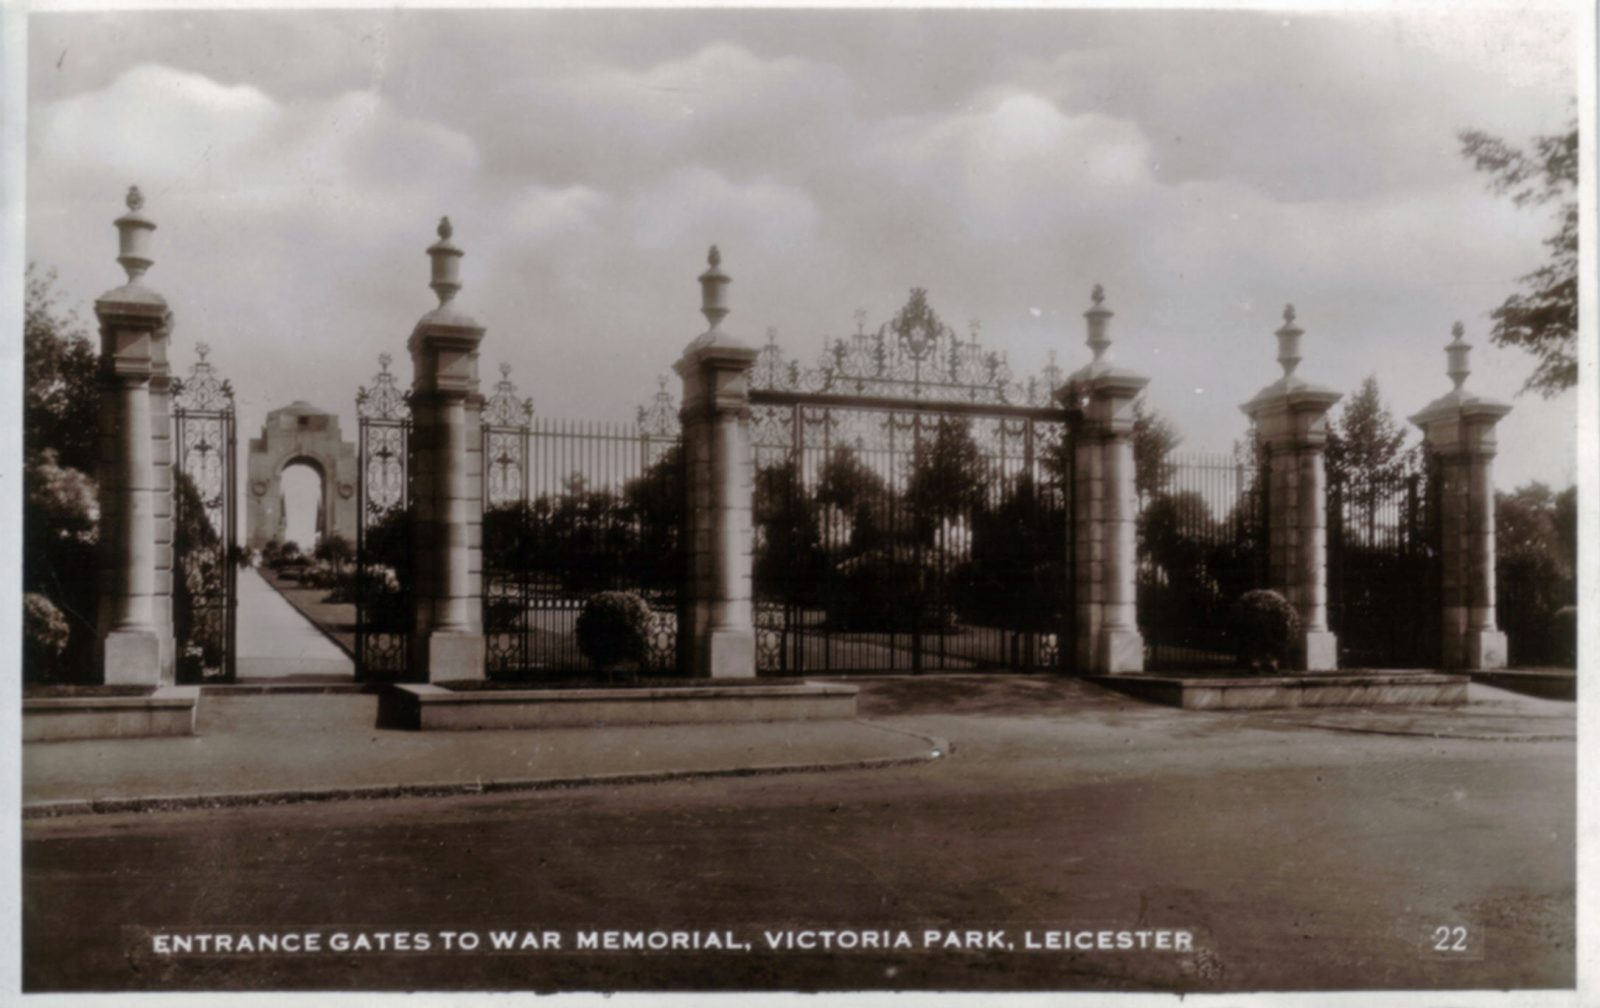 Victoria Park, Leicester. Undated: Entrance gates to war memorial. (File:1229)